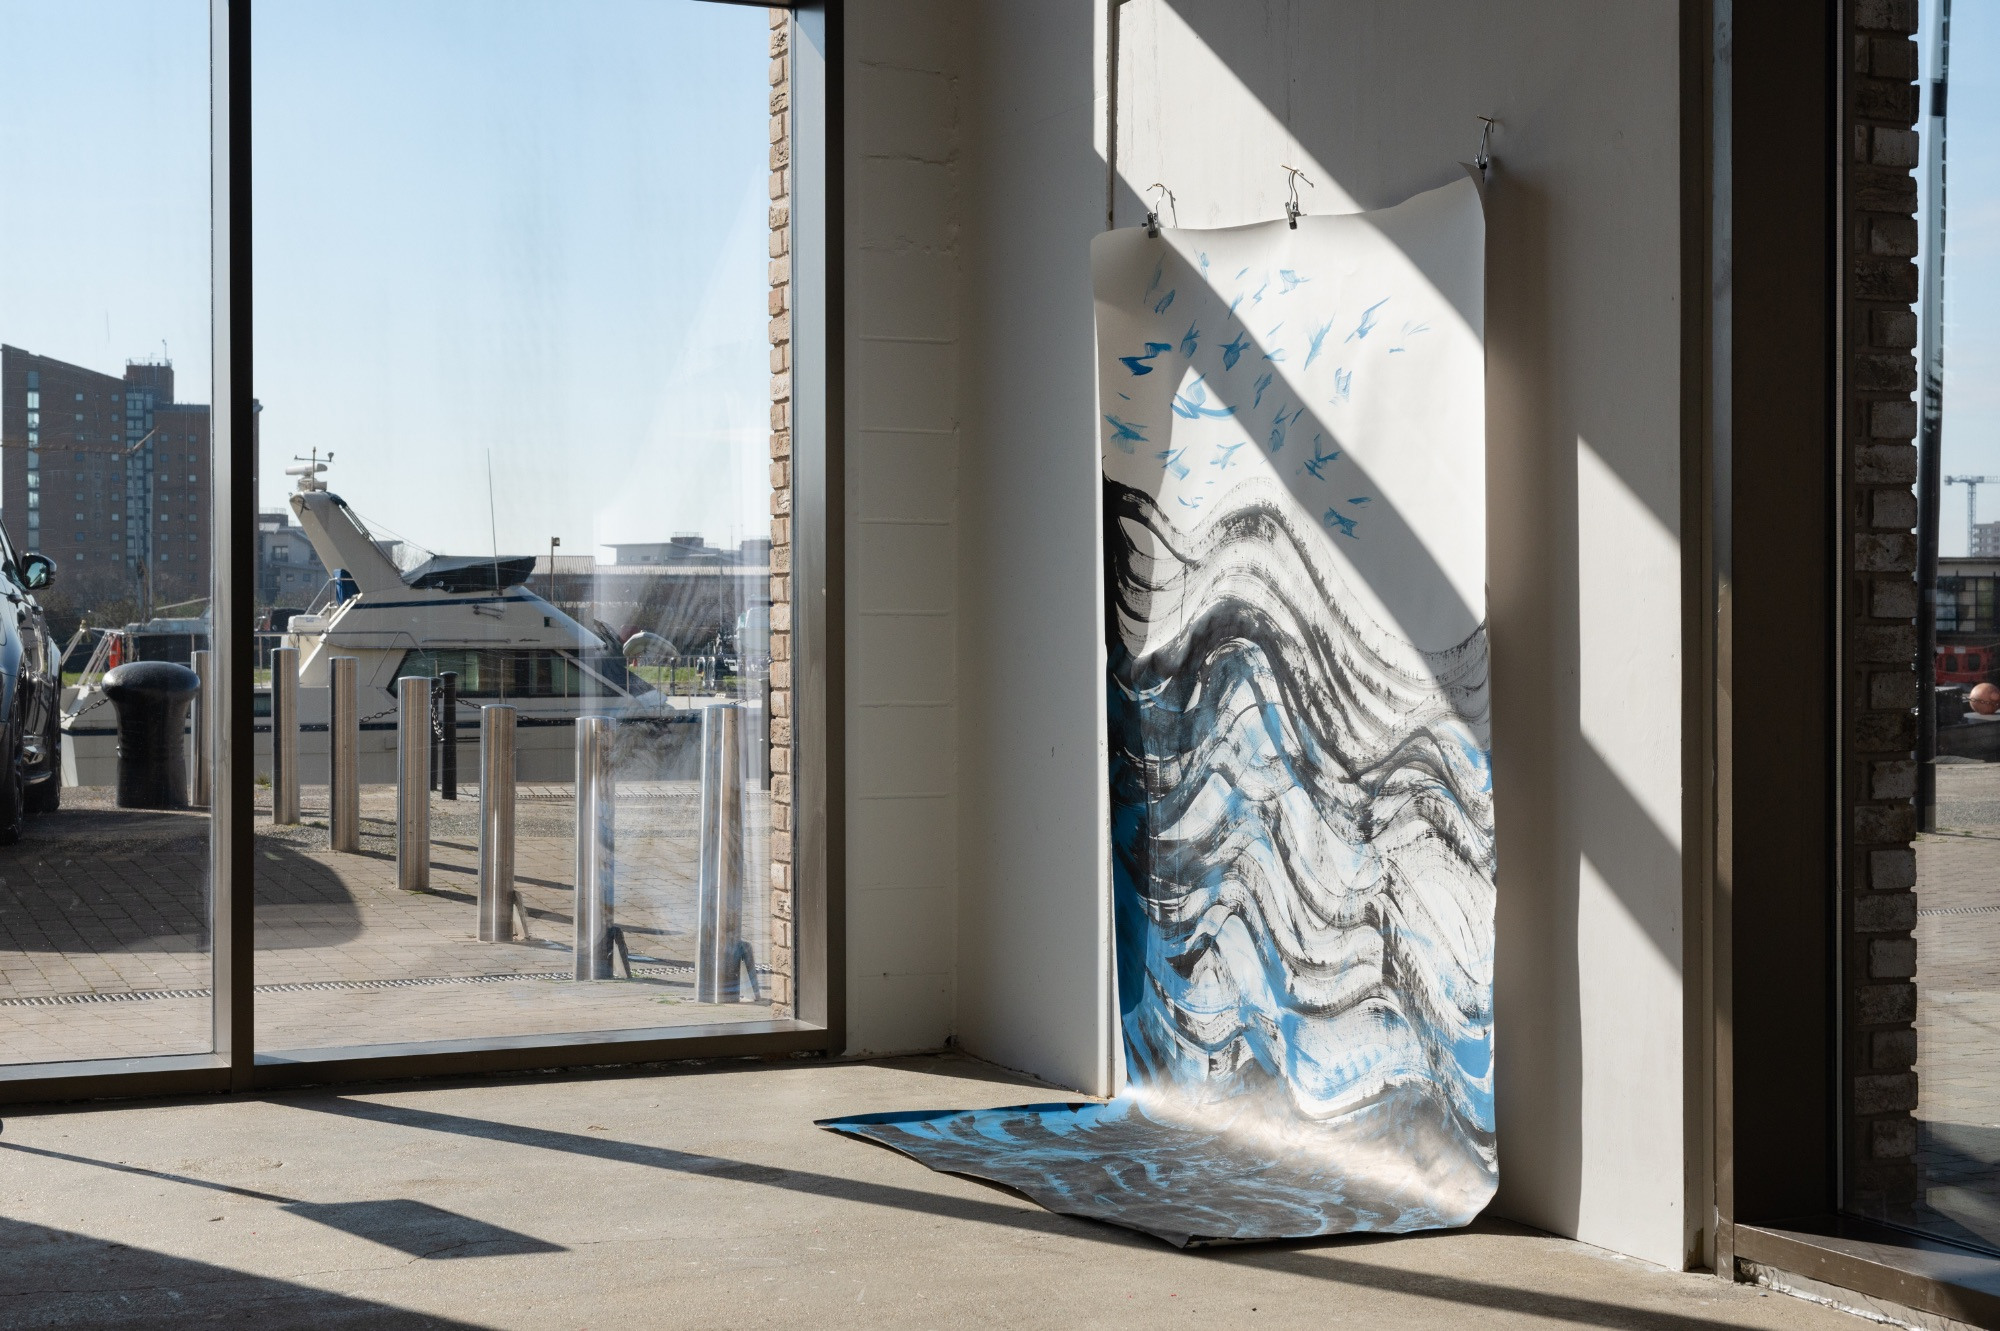 Large abstract painted scroll hung up in window with dock view outside